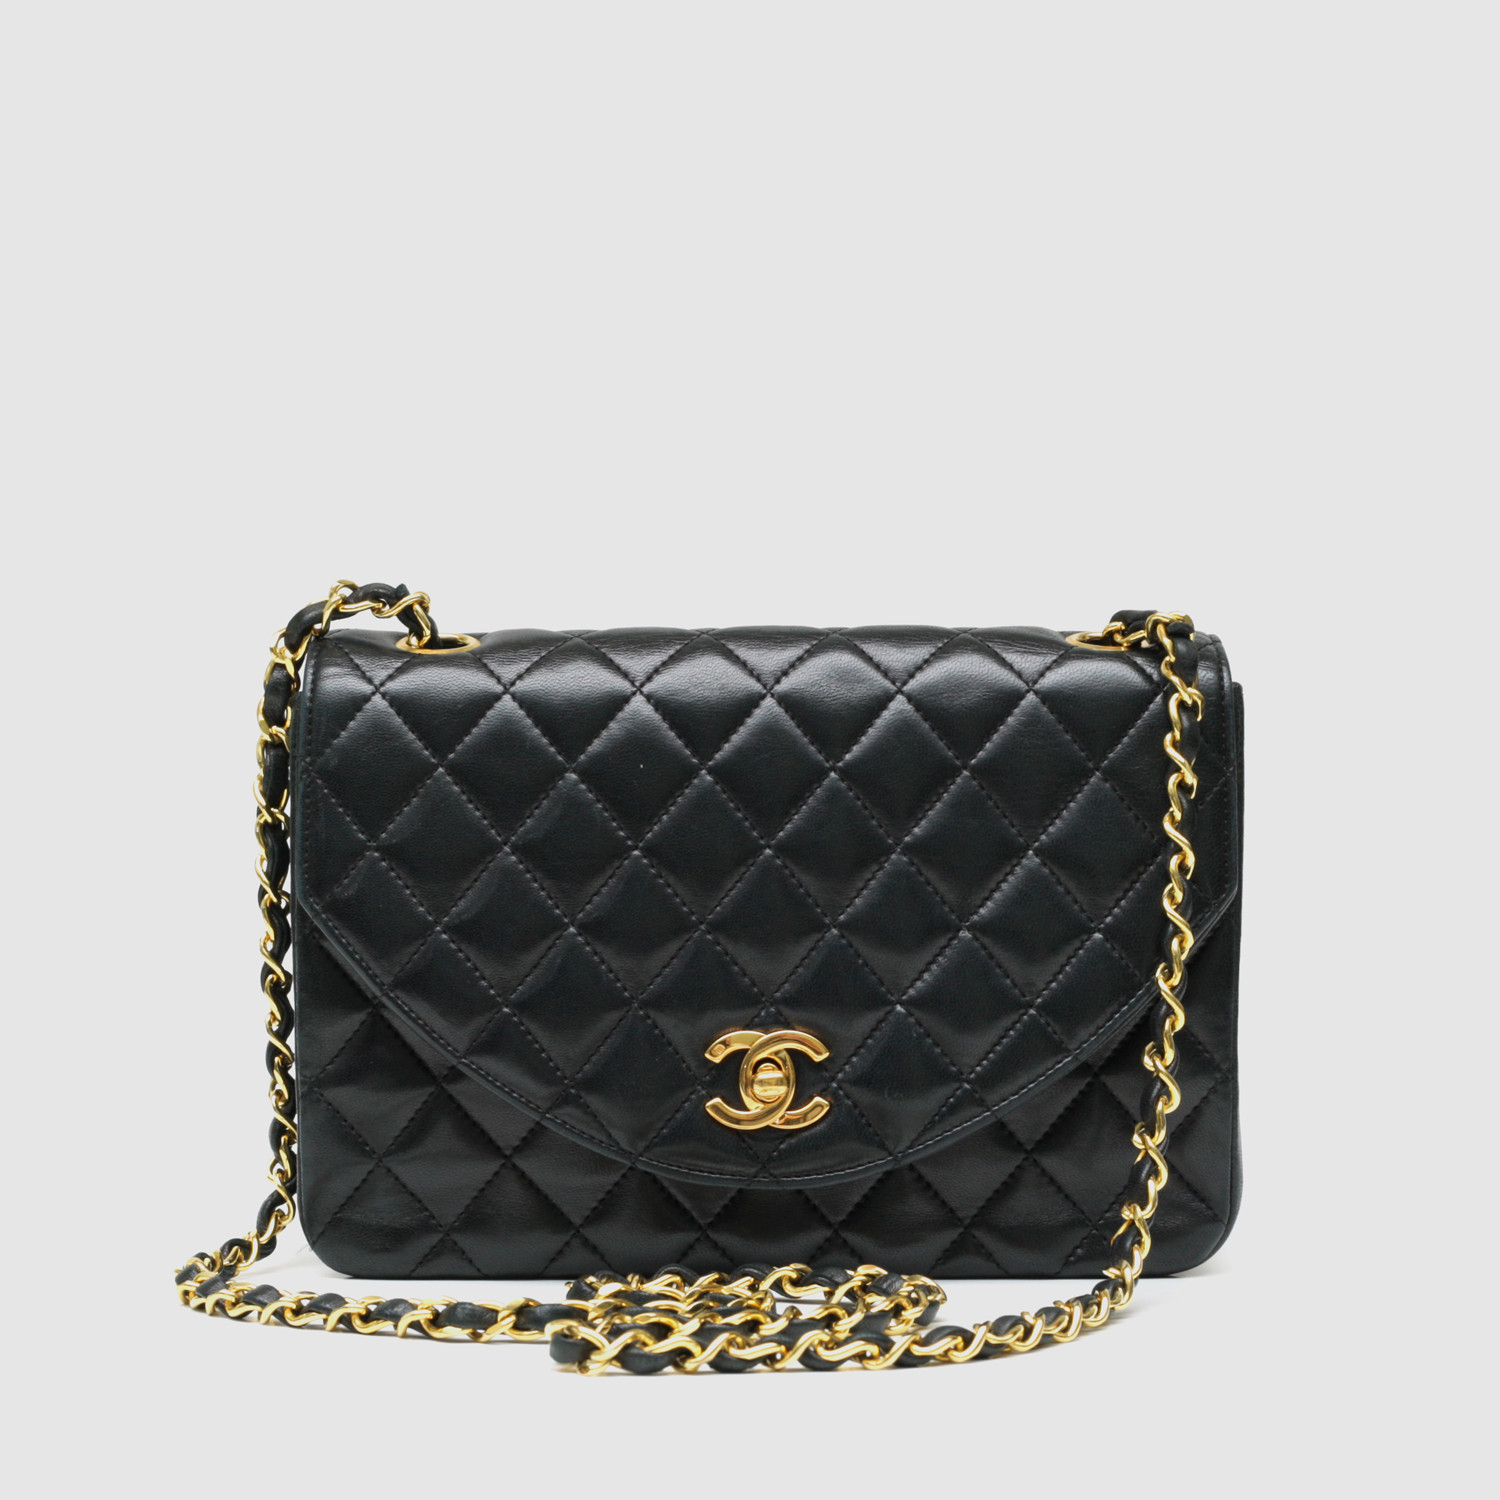 3ed71bb5be8e Chanel Small Flap Bag // Black Quilted Lambskin - Vintage Luxury ...